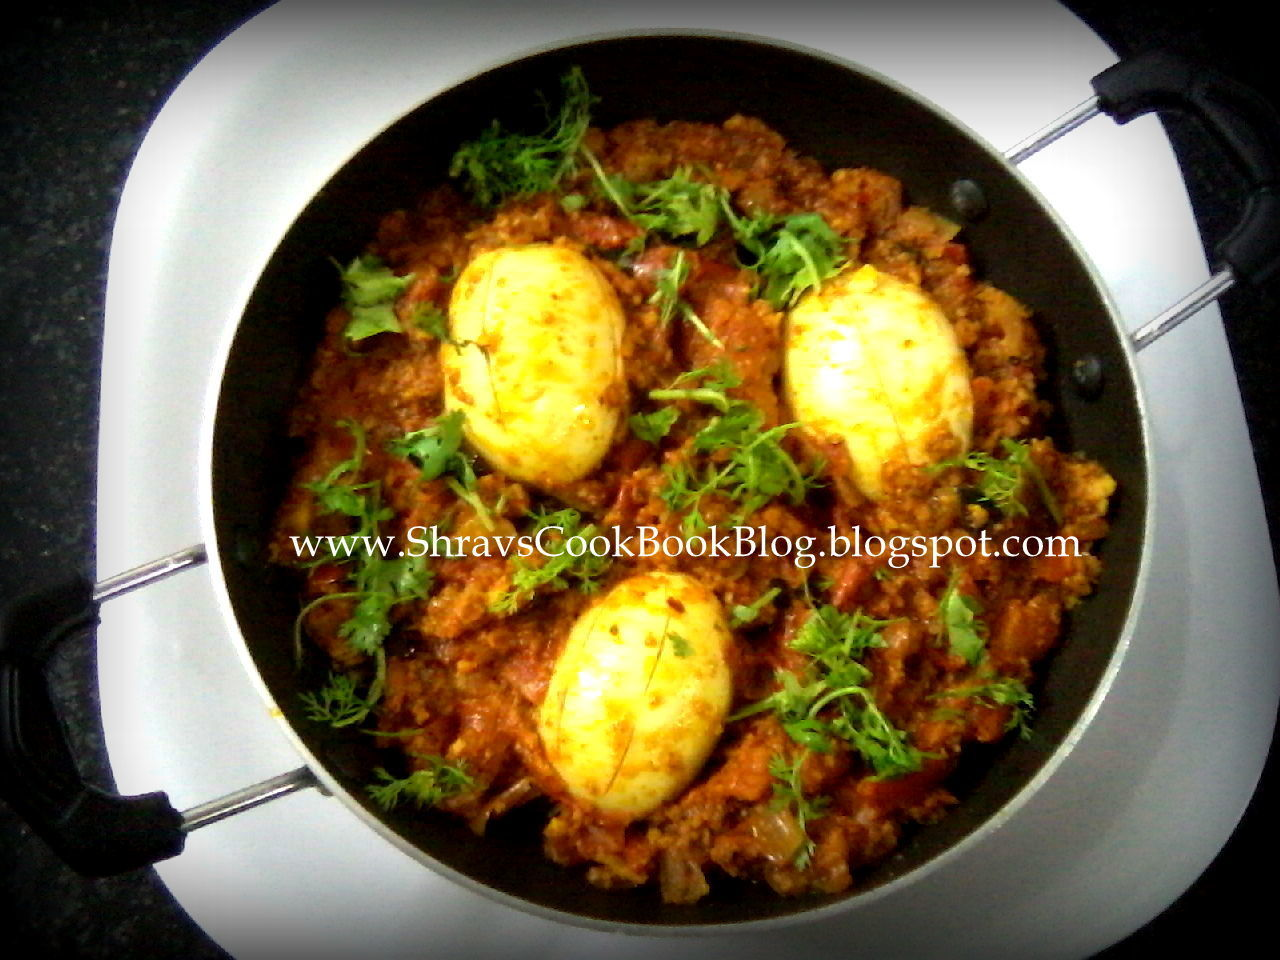 Chettinad Egg Curry-Tomato Egg Masala-How to make Chettinad Egg Masala Gravy Recipe